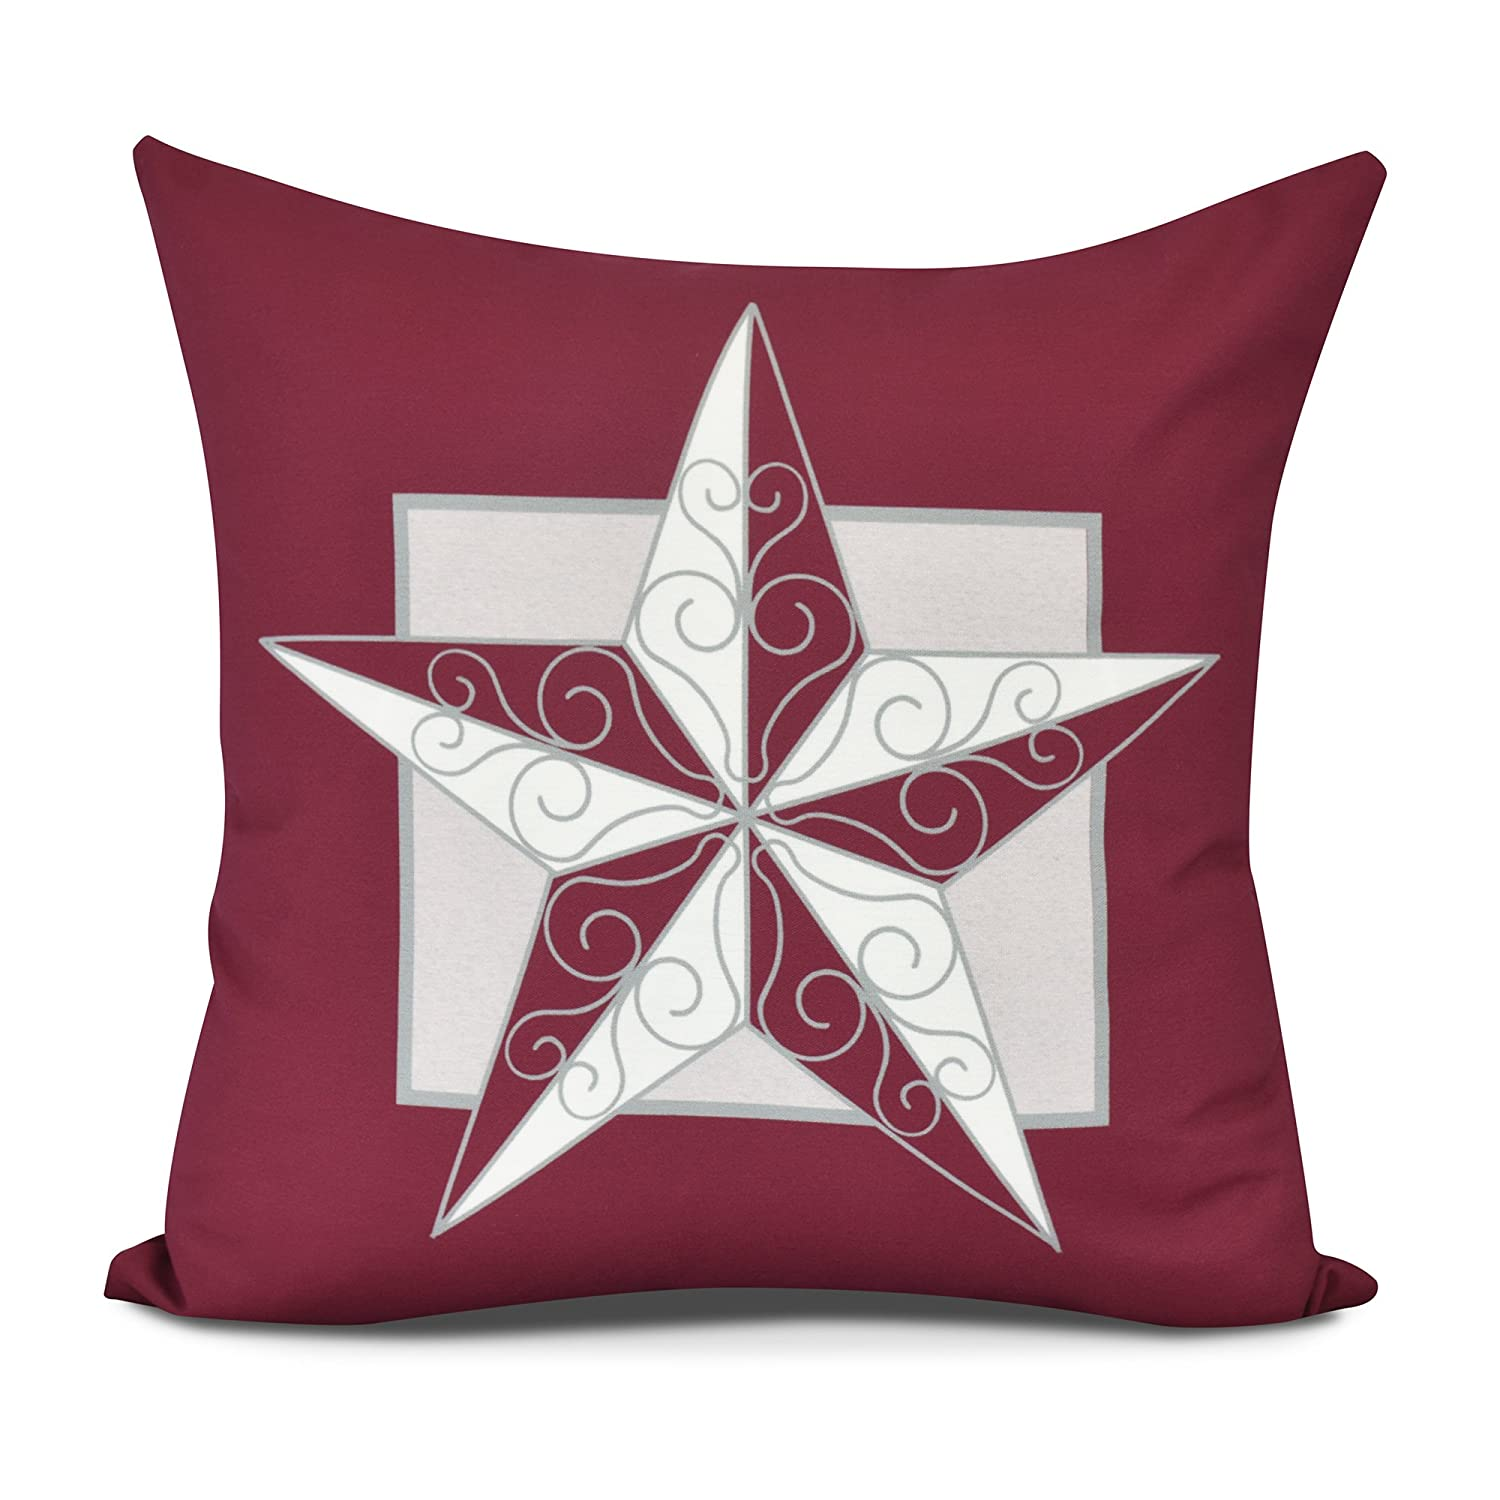 E by design PHG958RE6-26 Night Star Decorative Geometric Throw Pillow 26' Red